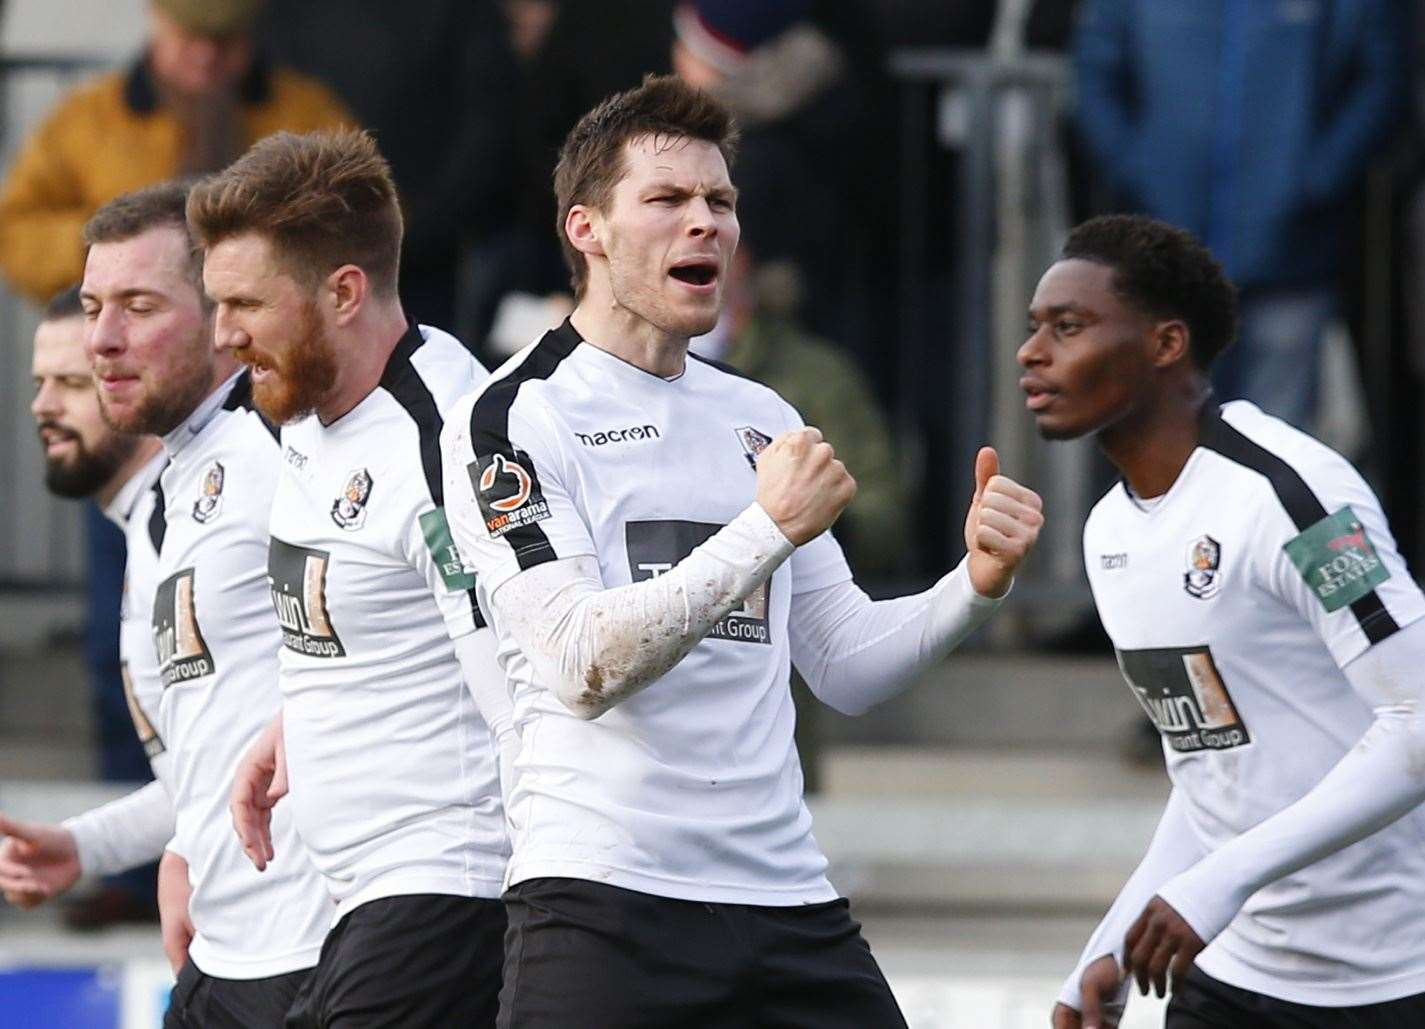 Charlie Sheringham is hoping to fire Dartford into the National League South play-offs Picture: Andy Jones